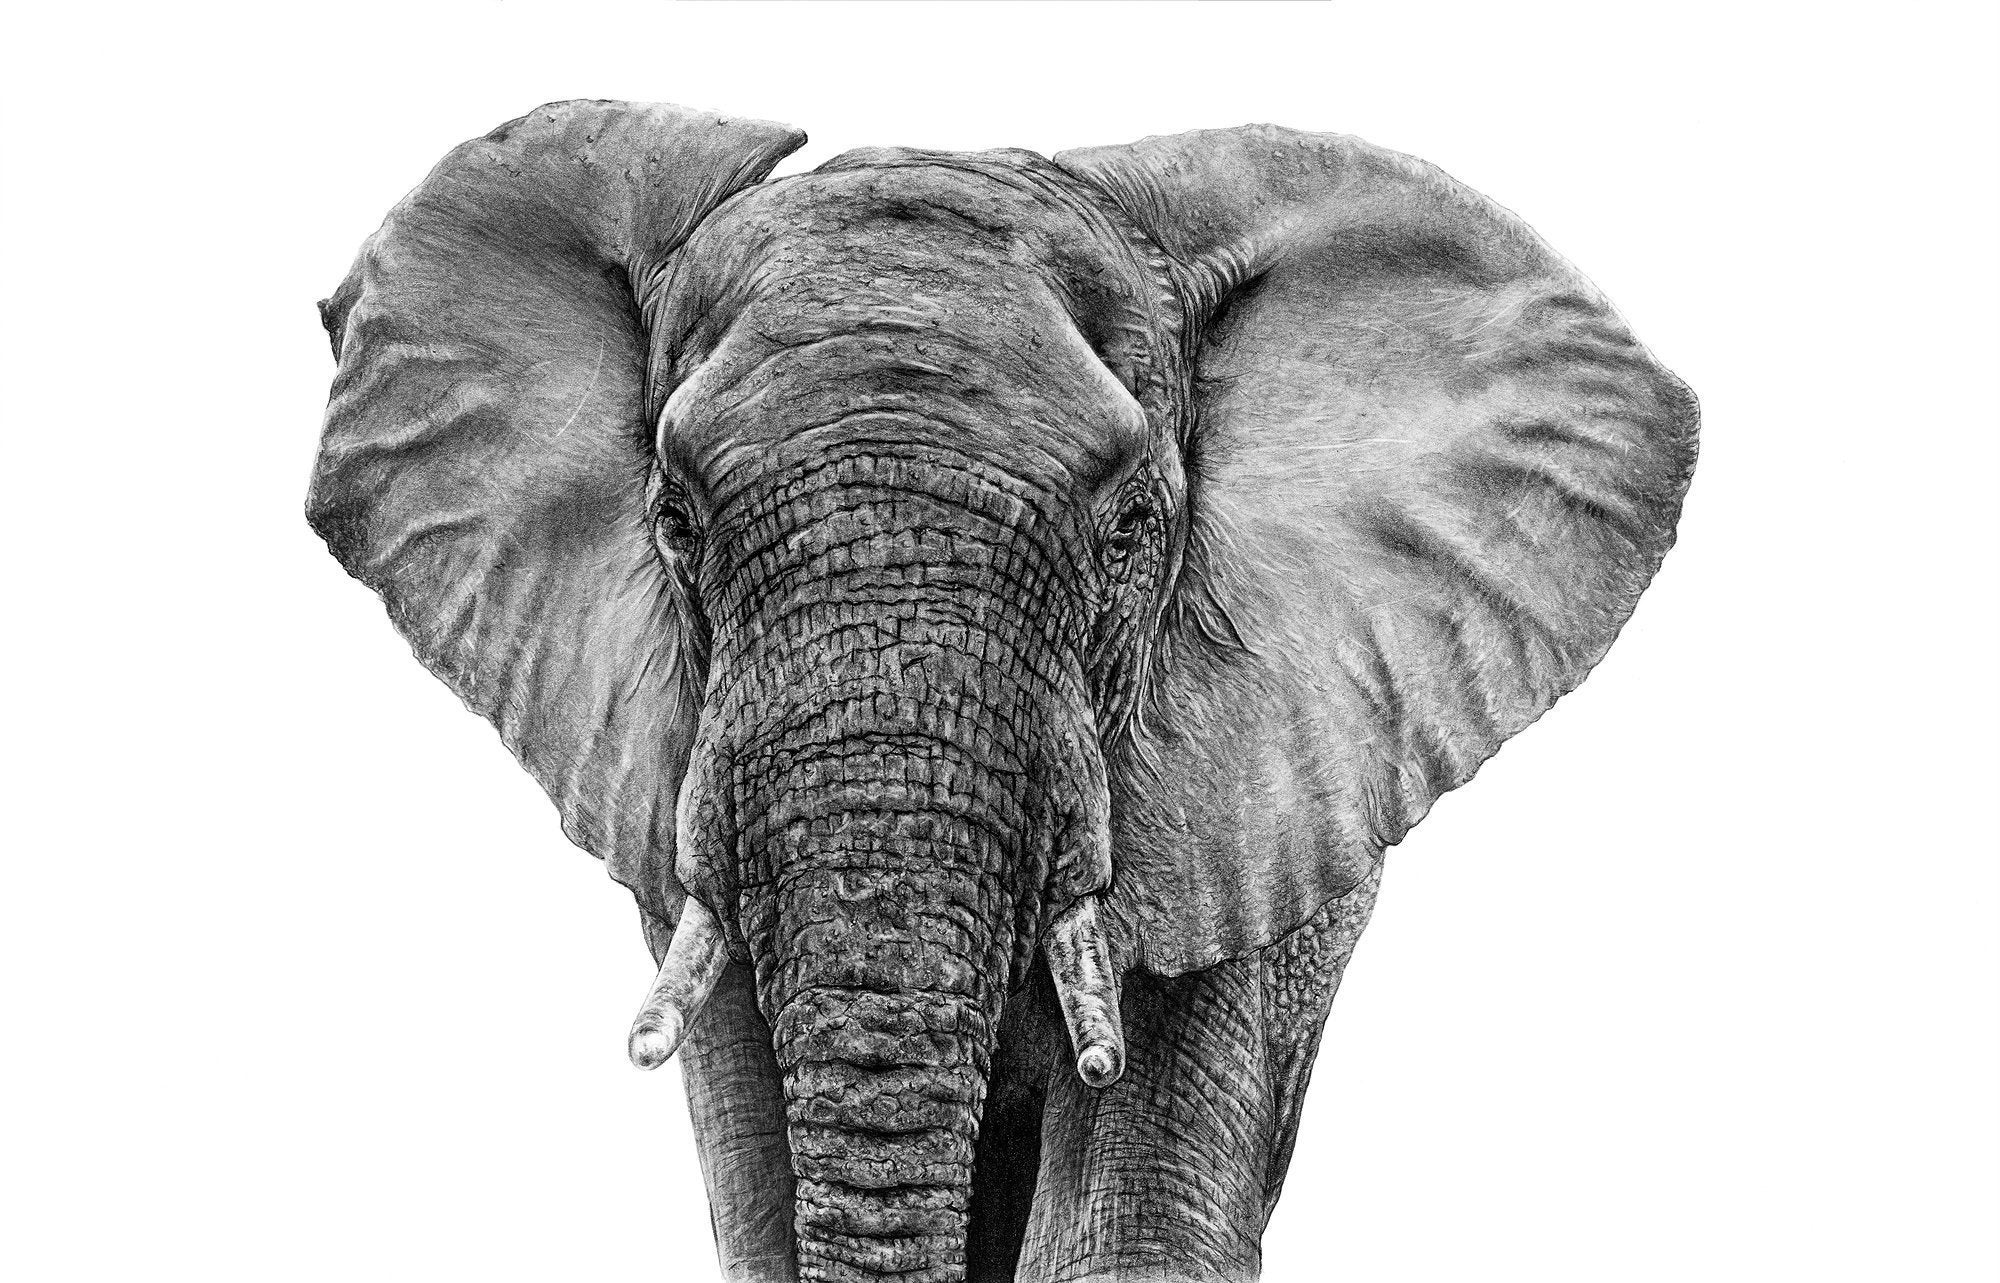 Gareth's beautiful elephant which he made with just pencil, is  available in A2 and A3 size!